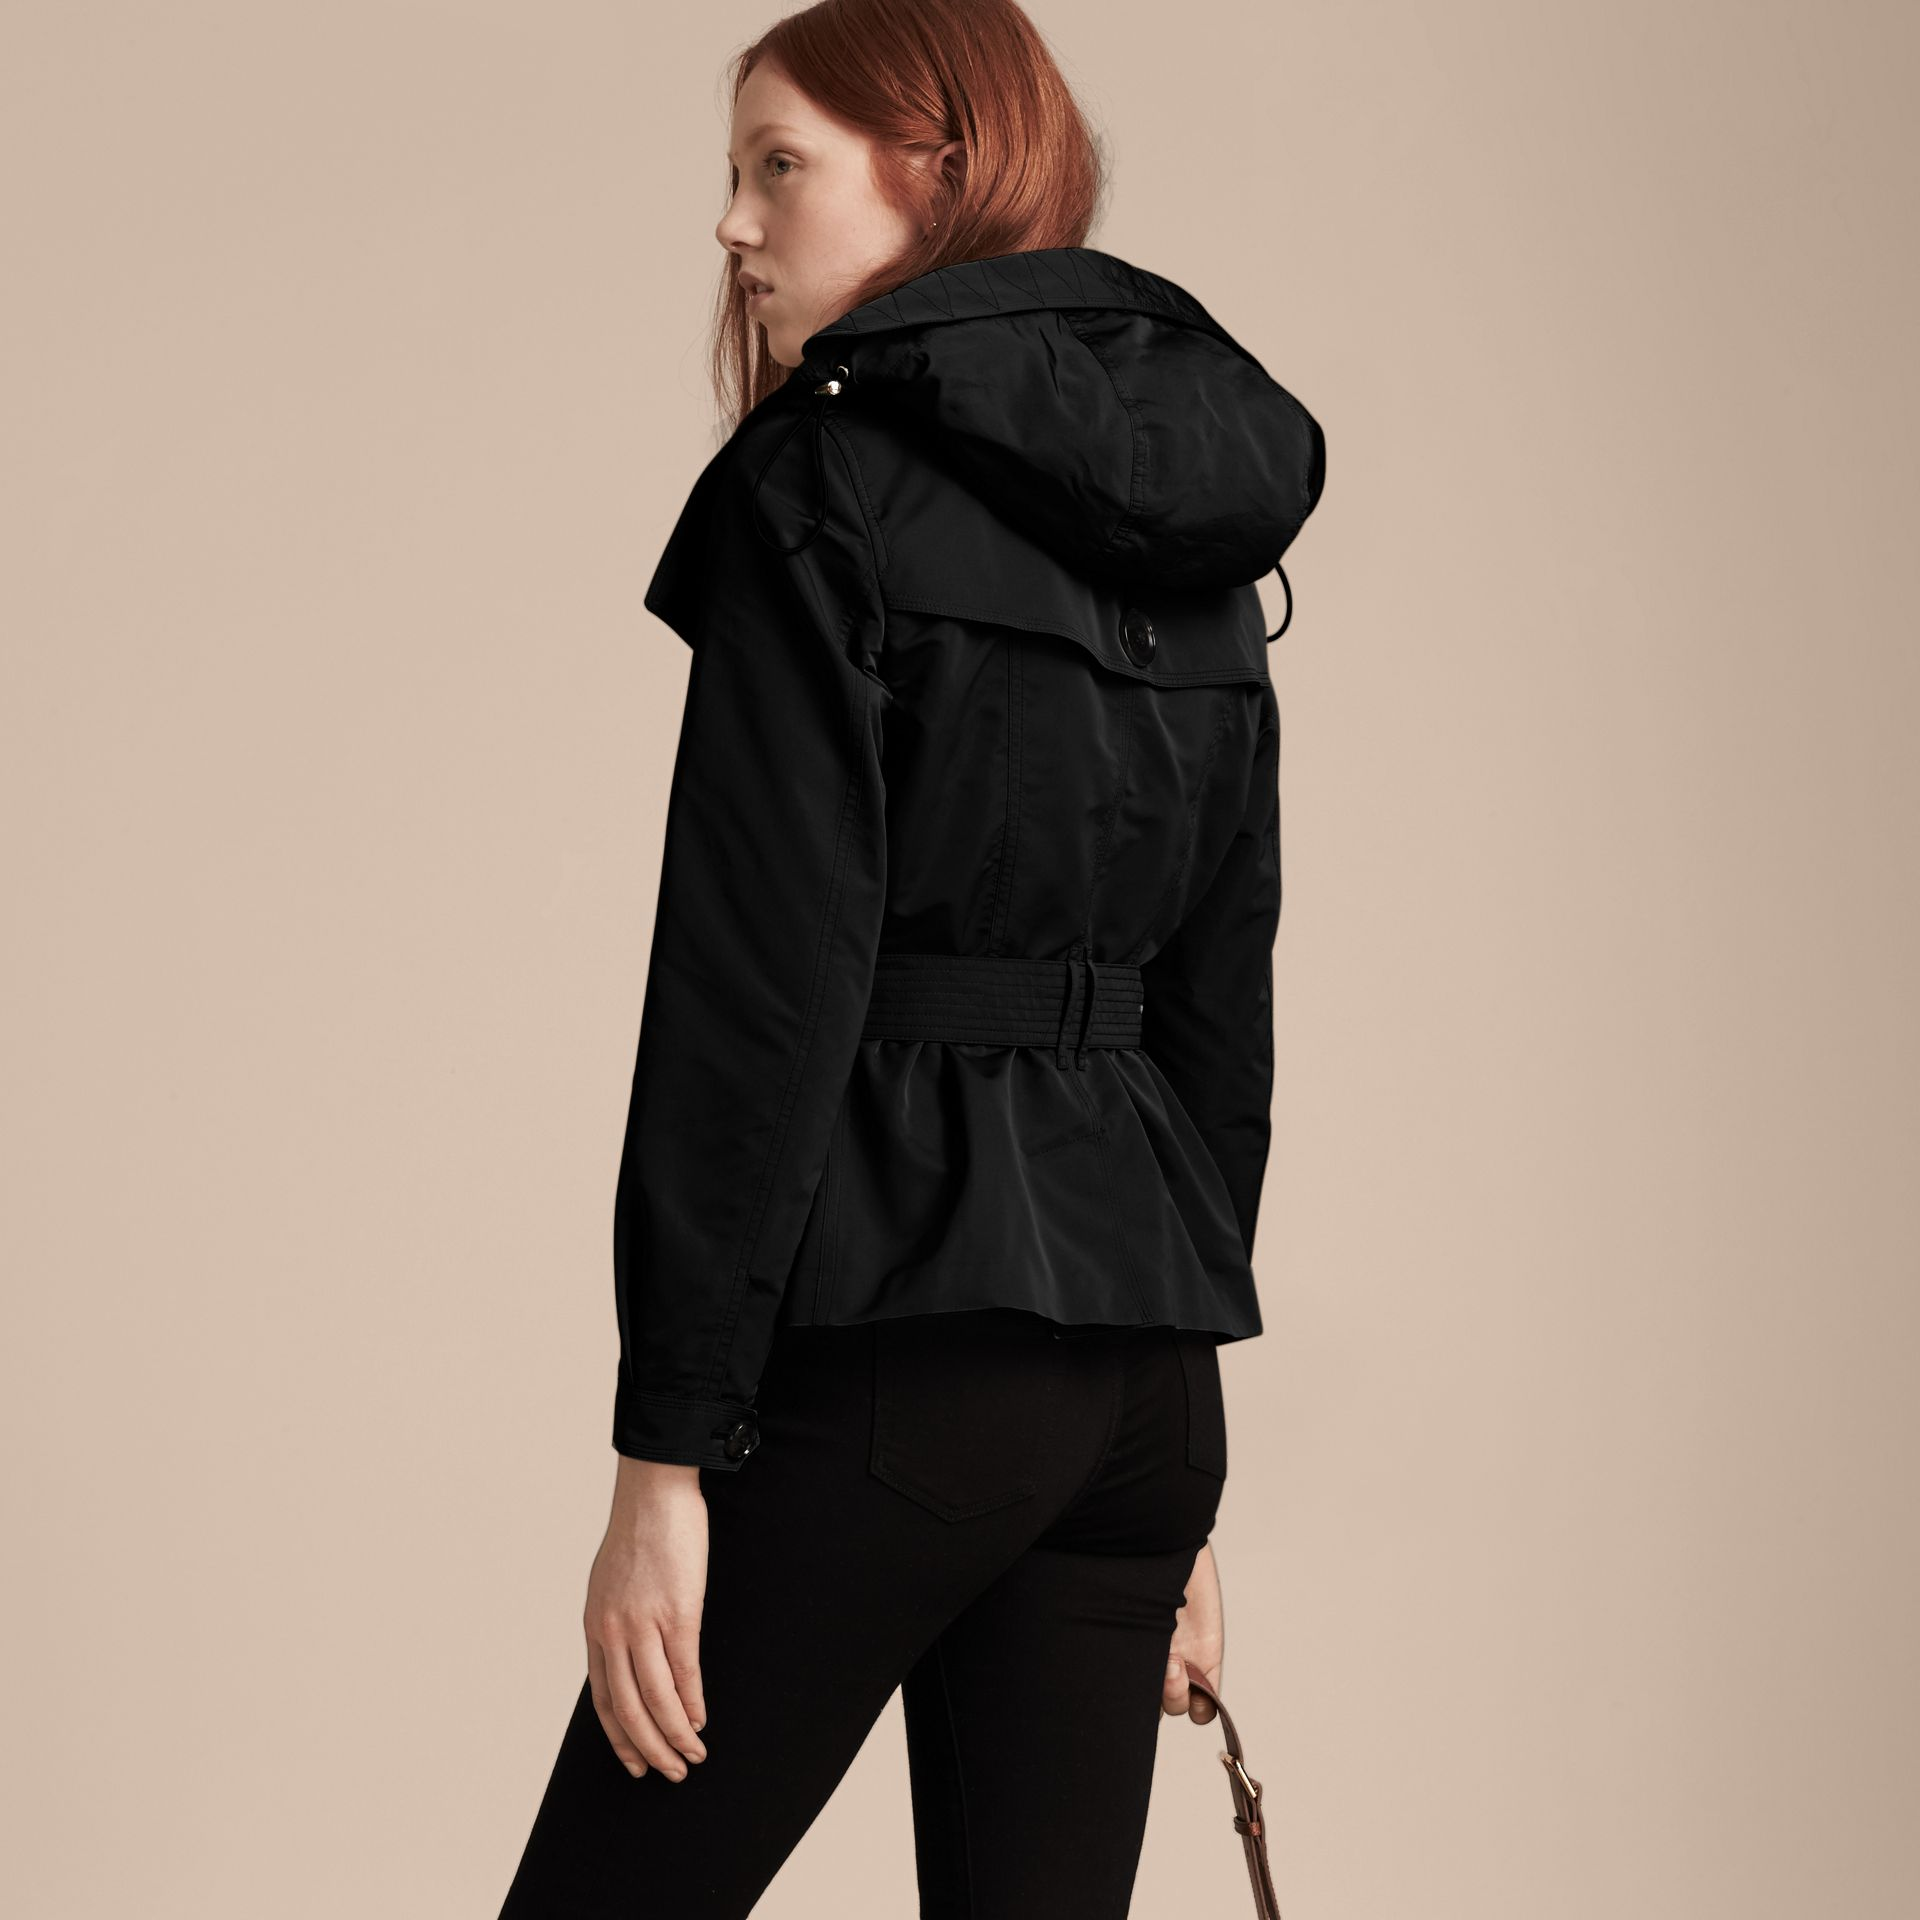 Showerproof Taffeta Trench Jacket with Detachable Hood in Black - gallery image 3